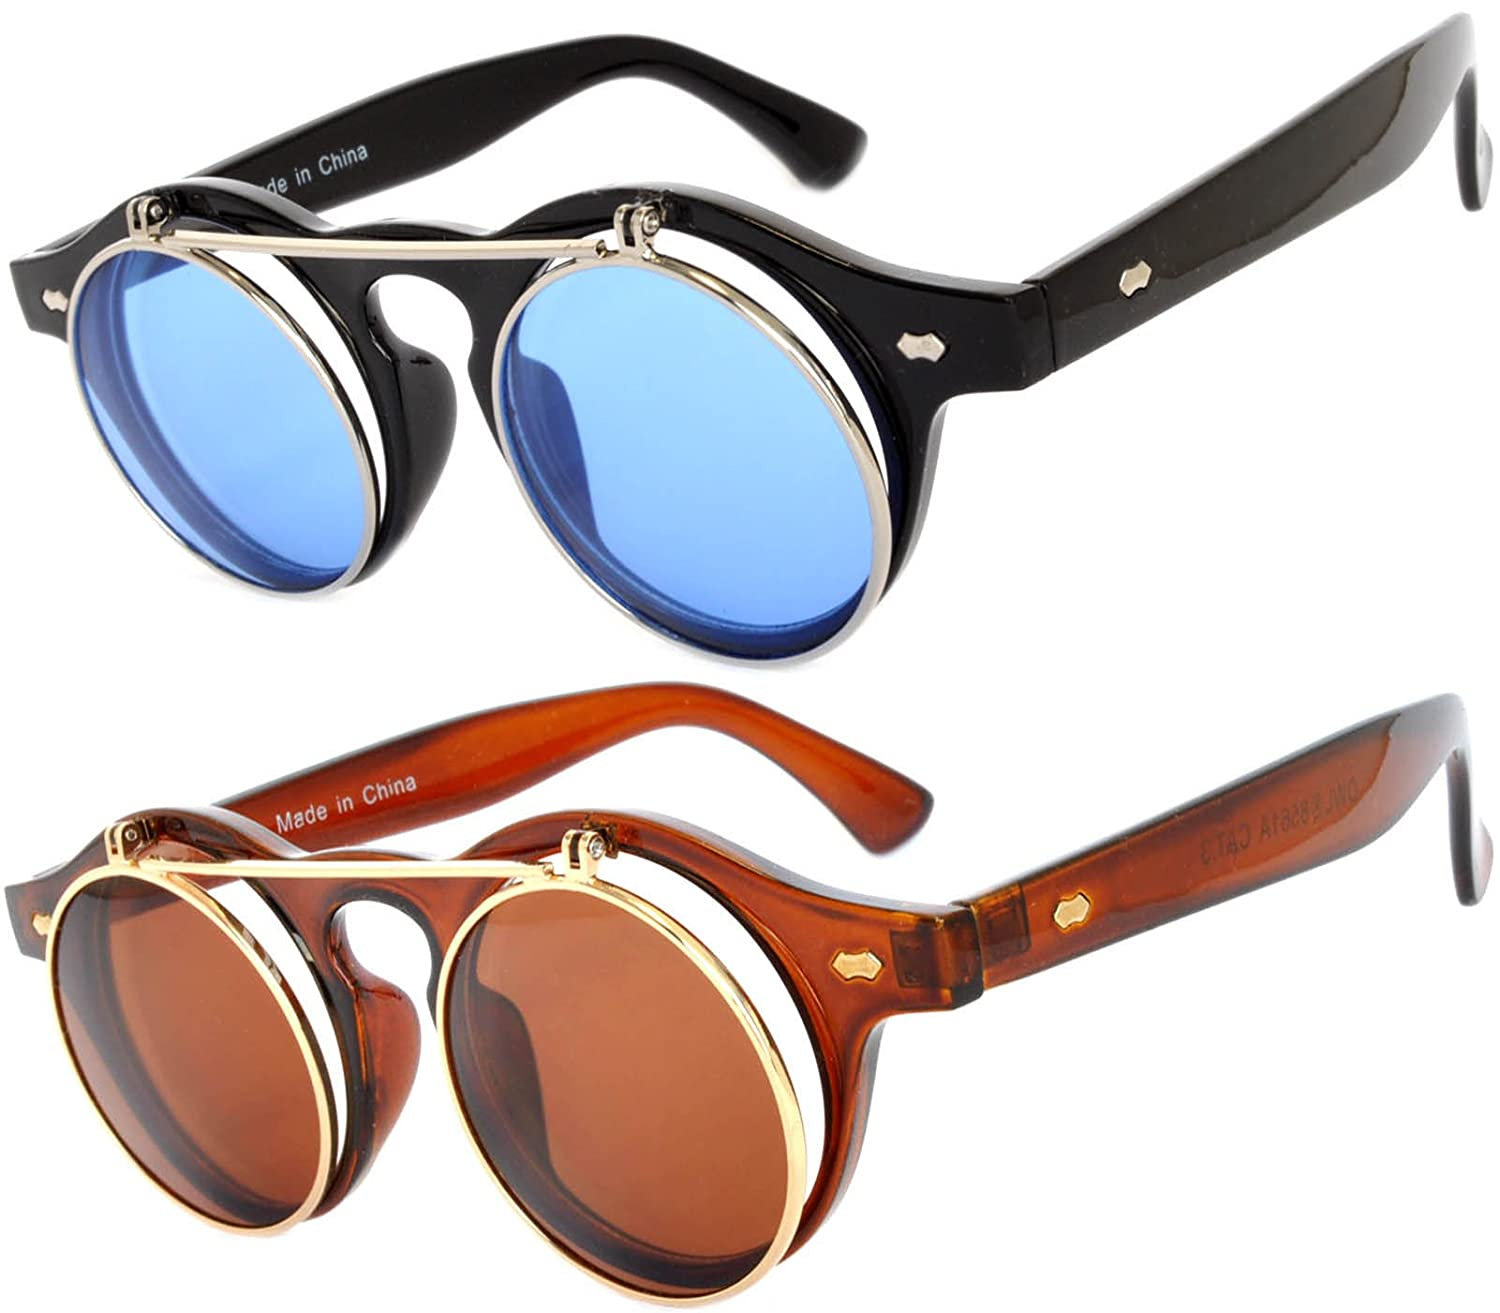 96b70efaaa Amazon.com  Flip Up Steampunk Vintage Retro Round Circle Gothic Hippie  Colored Plastic Frame Sunglasses Blue Brown Lens OWL  Clothing